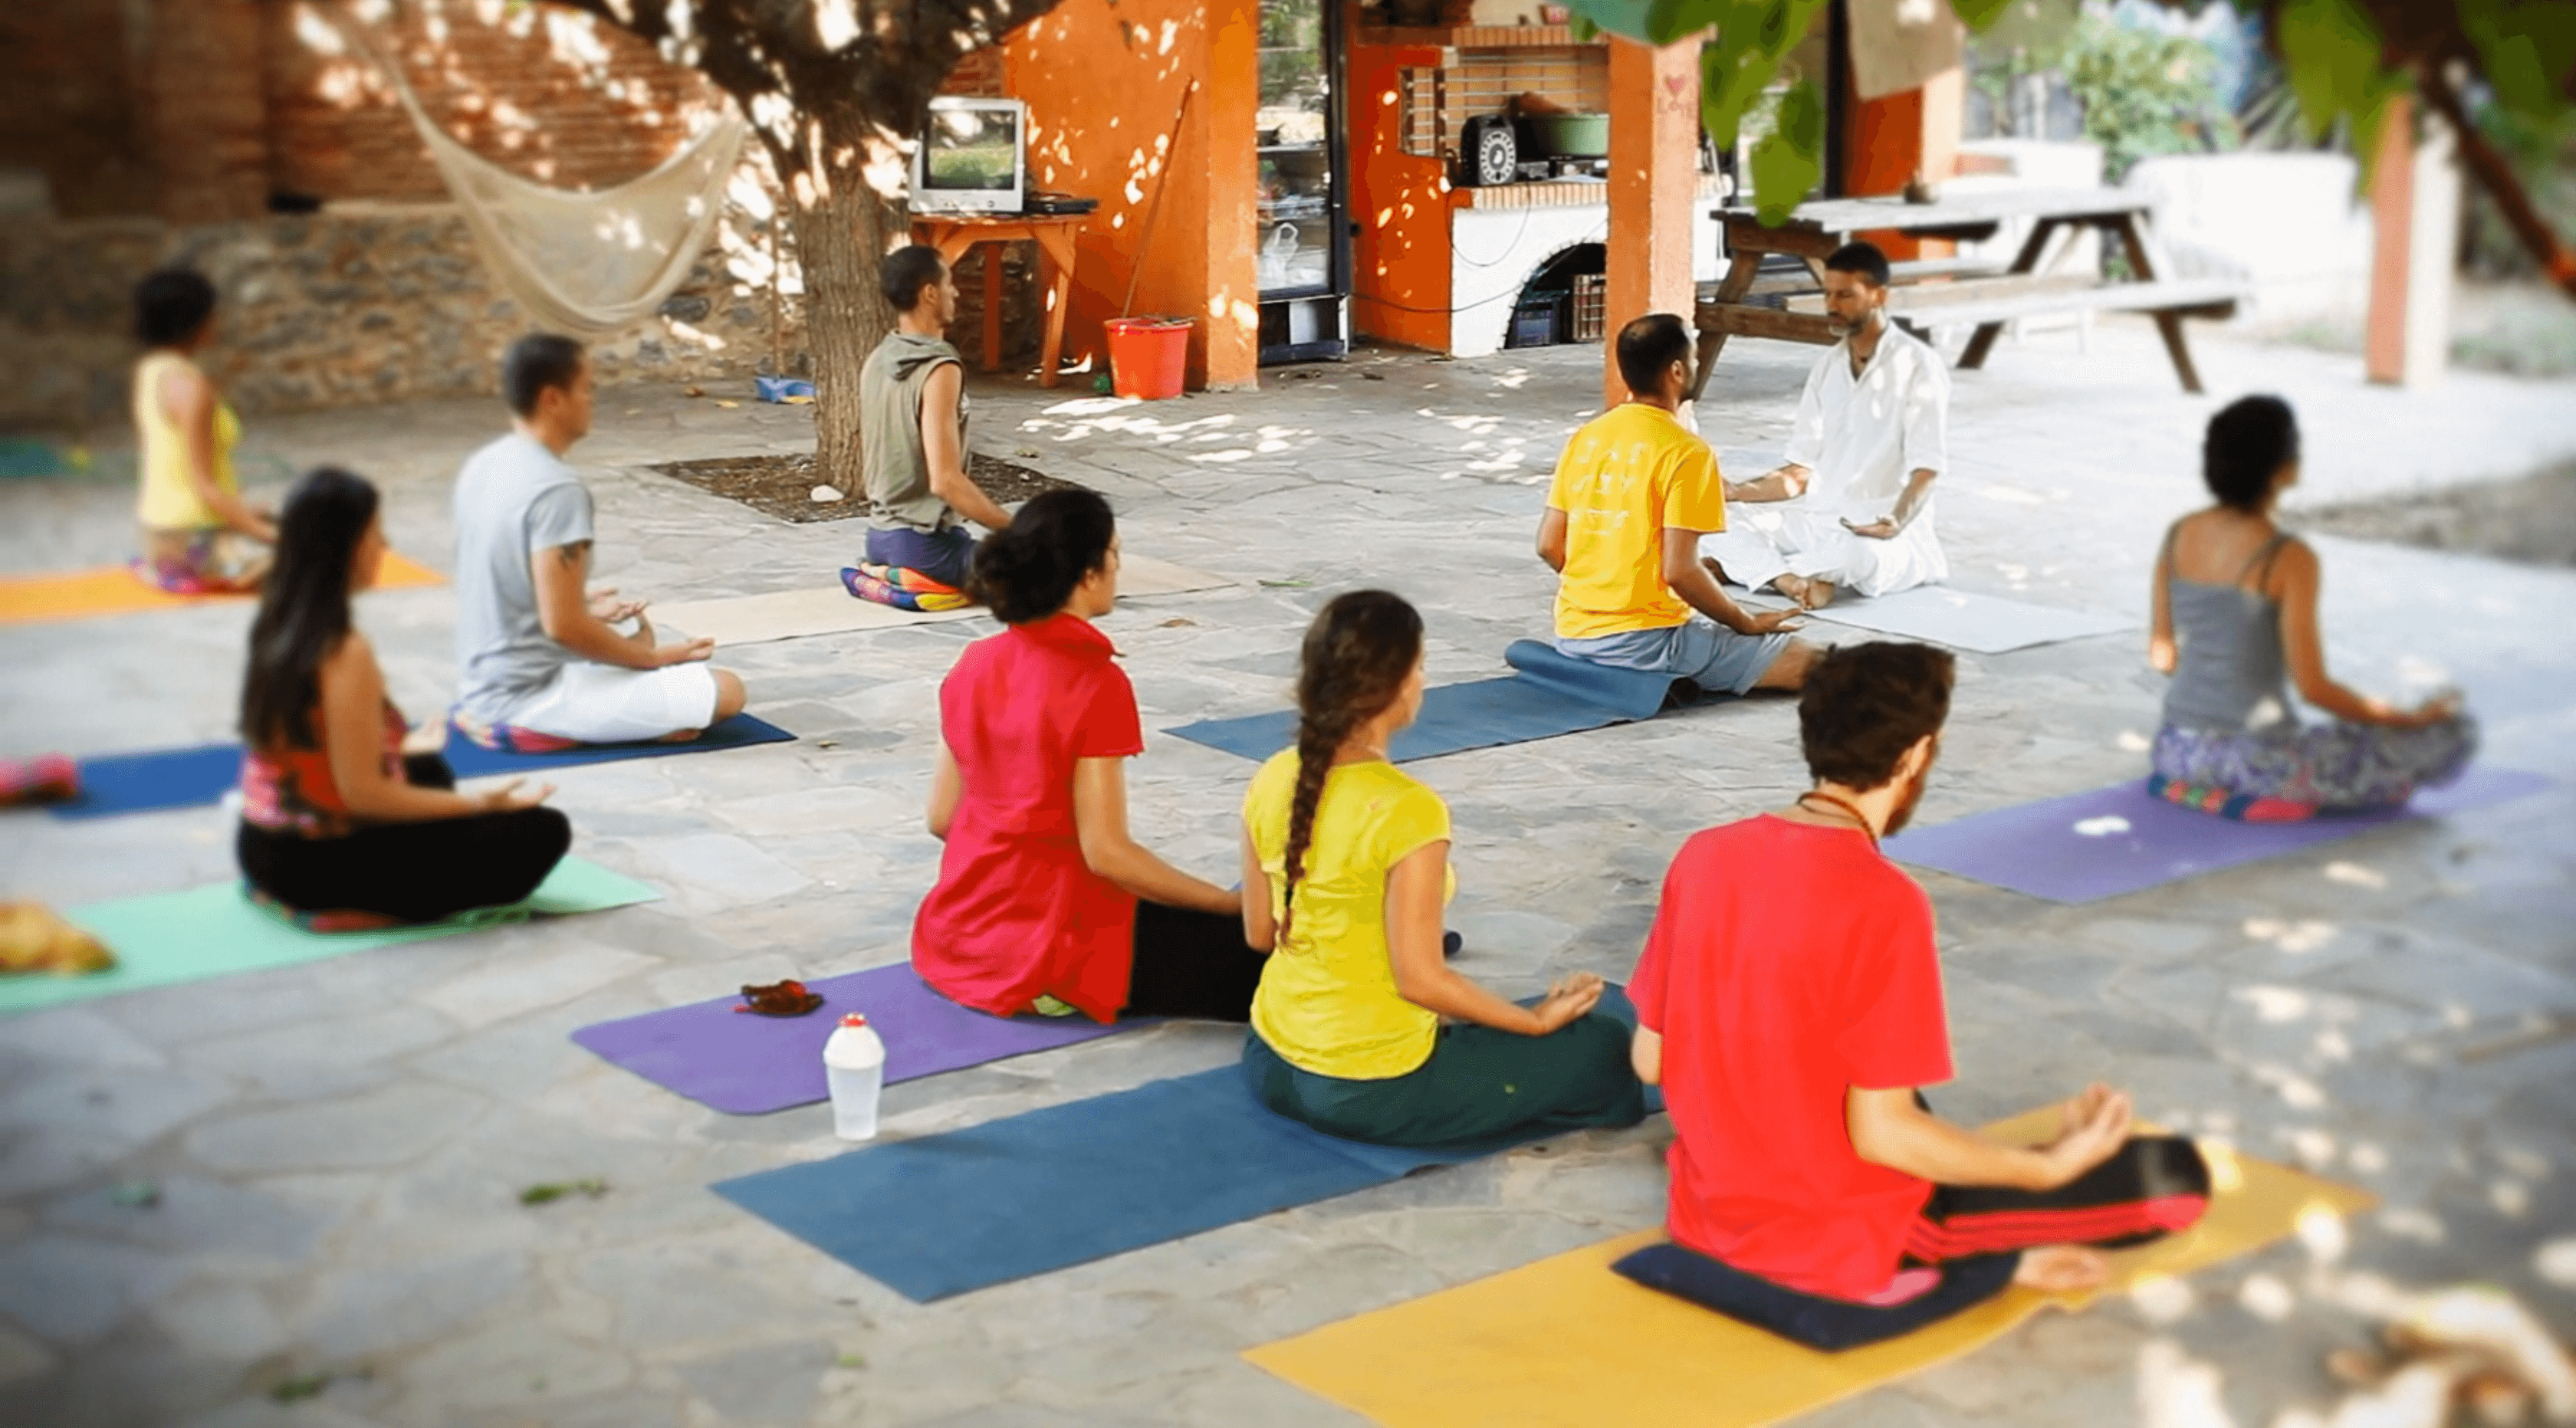 A group of people meditate along side one another